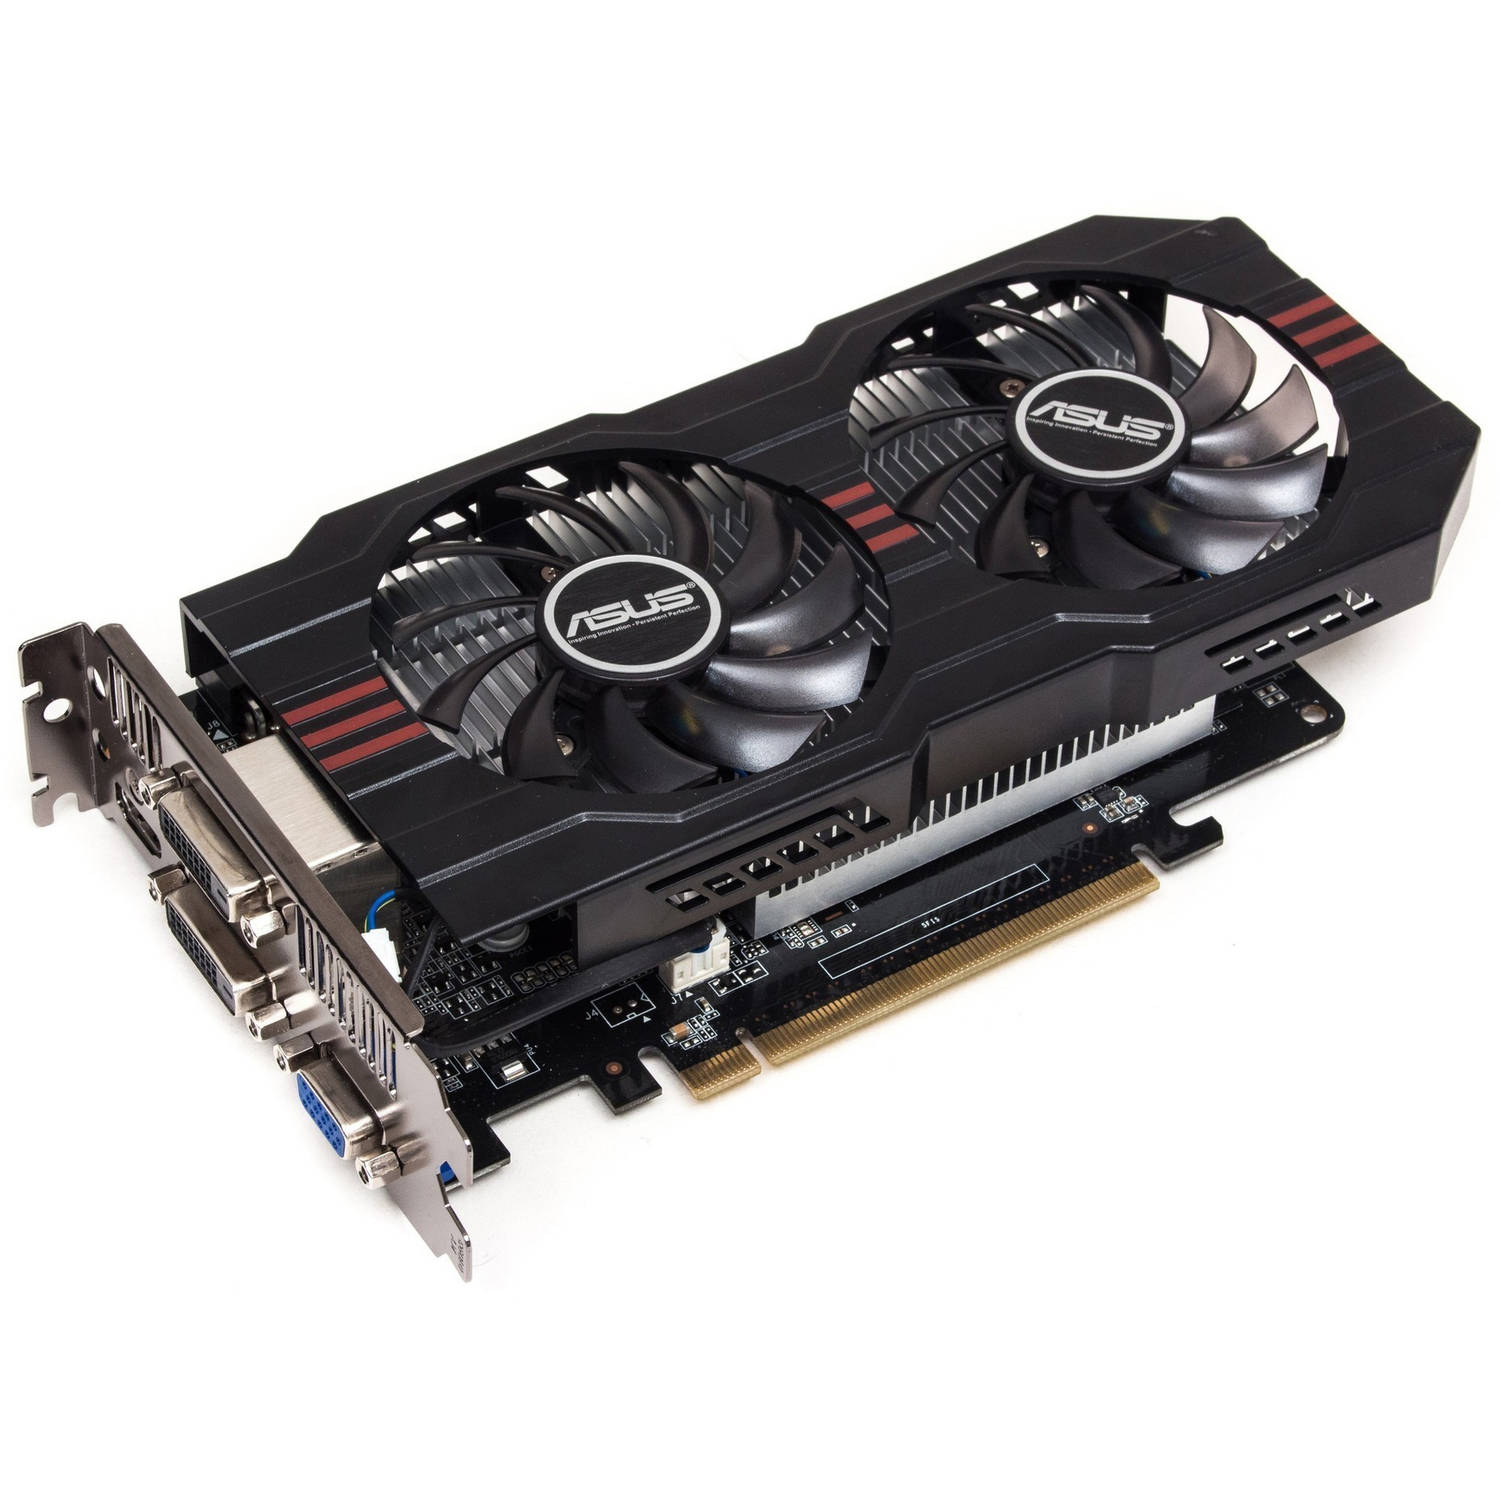 ASUS NVIDIA GeForce GTX 750 Ti 2GB GDDR5 Graphics Card